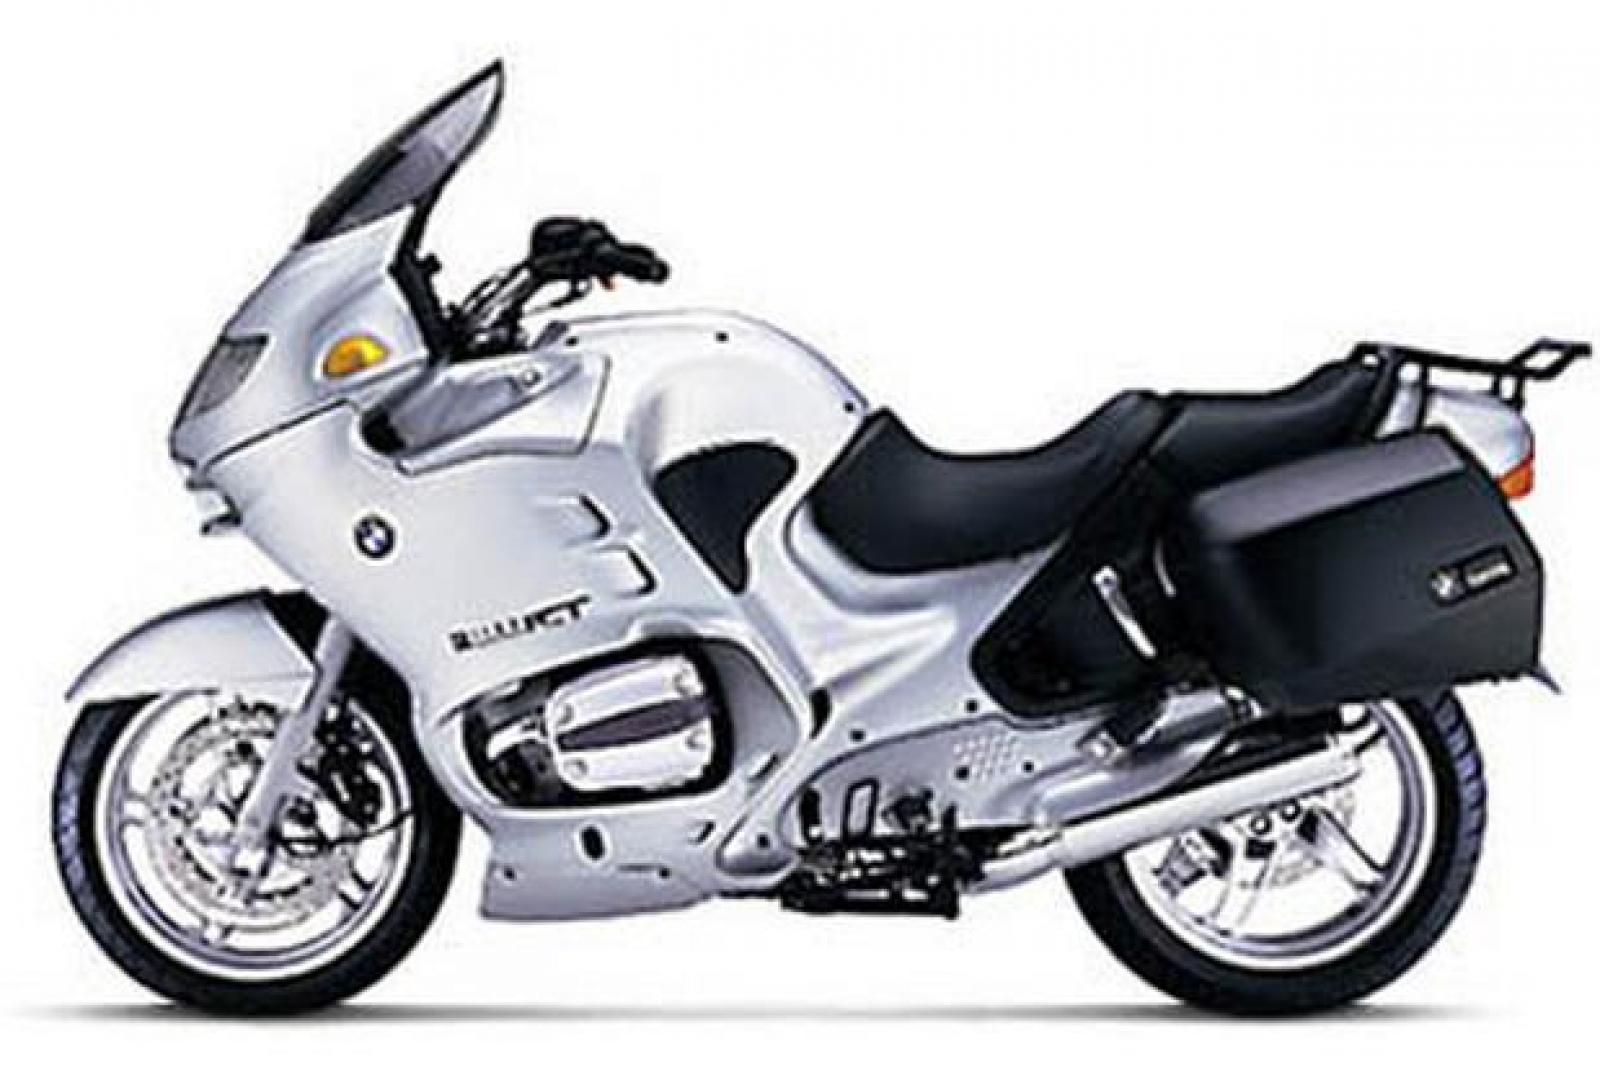 hight resolution of 800 1024 1280 1600 origin bmw r1150rt